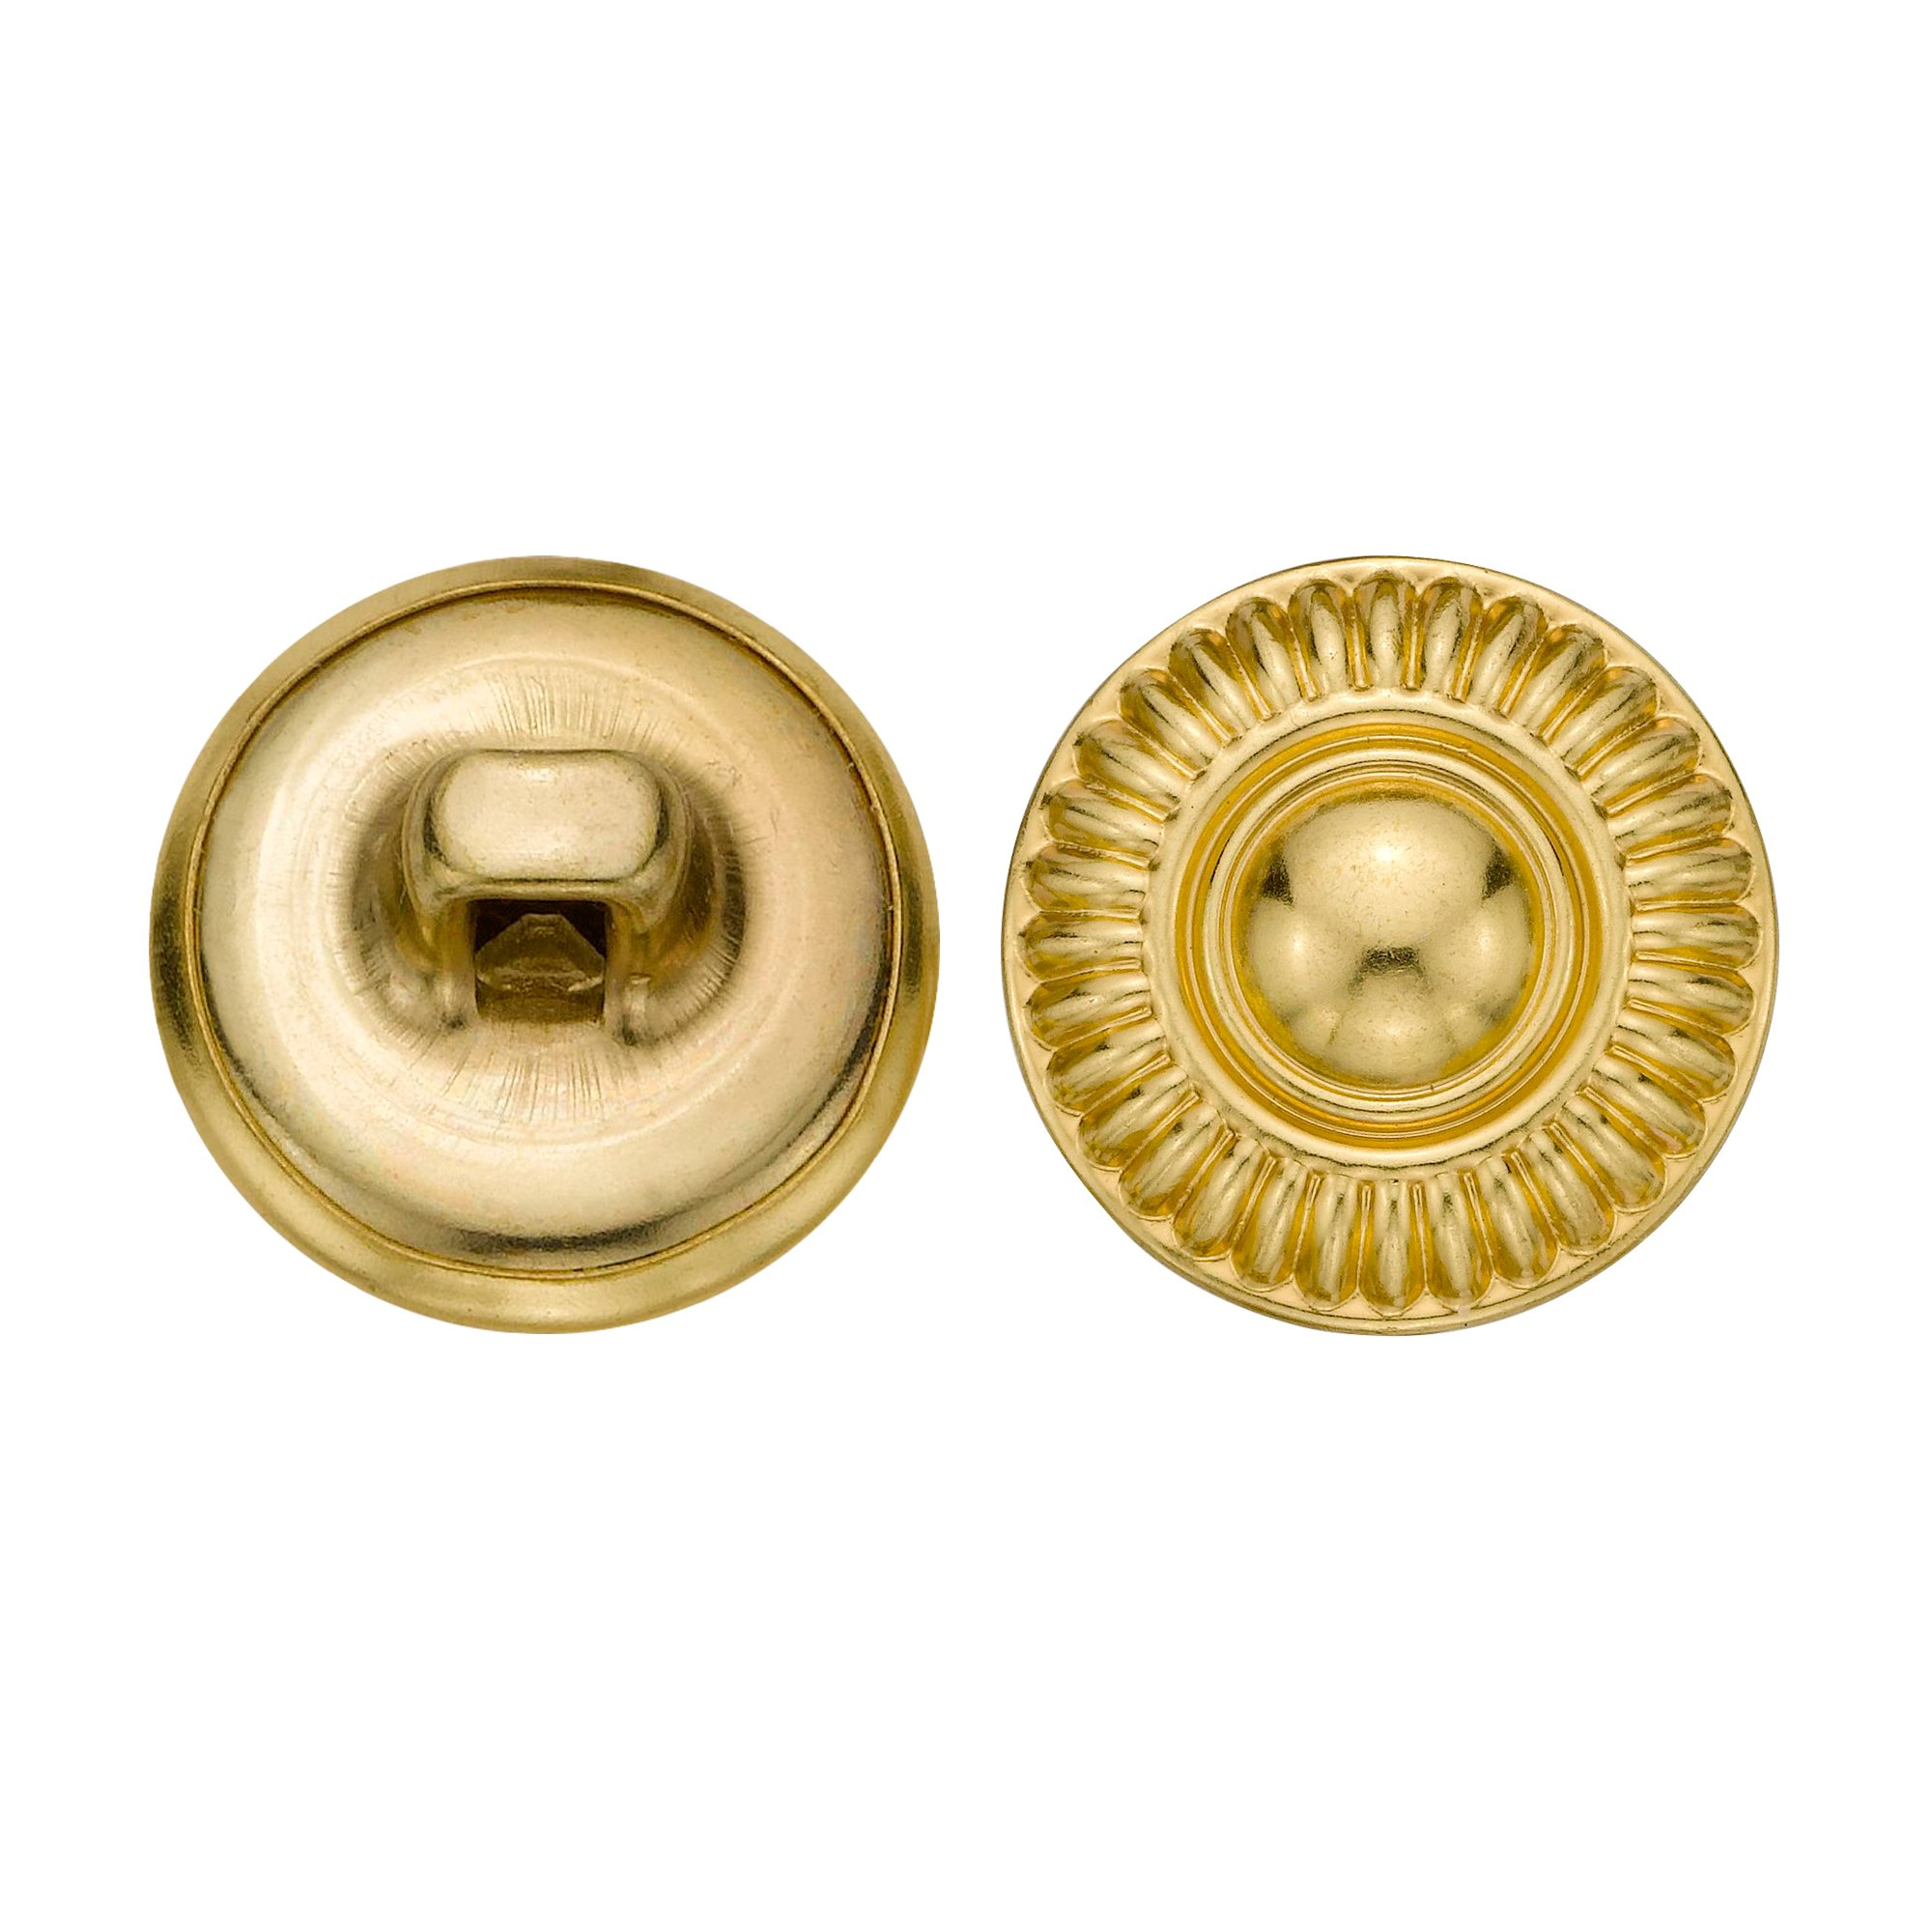 C&C Metal Products 5079 Modern Daisy Metal Button, Size 24 Ligne, Gold, 72-Pack by C&C Metal Products Corp